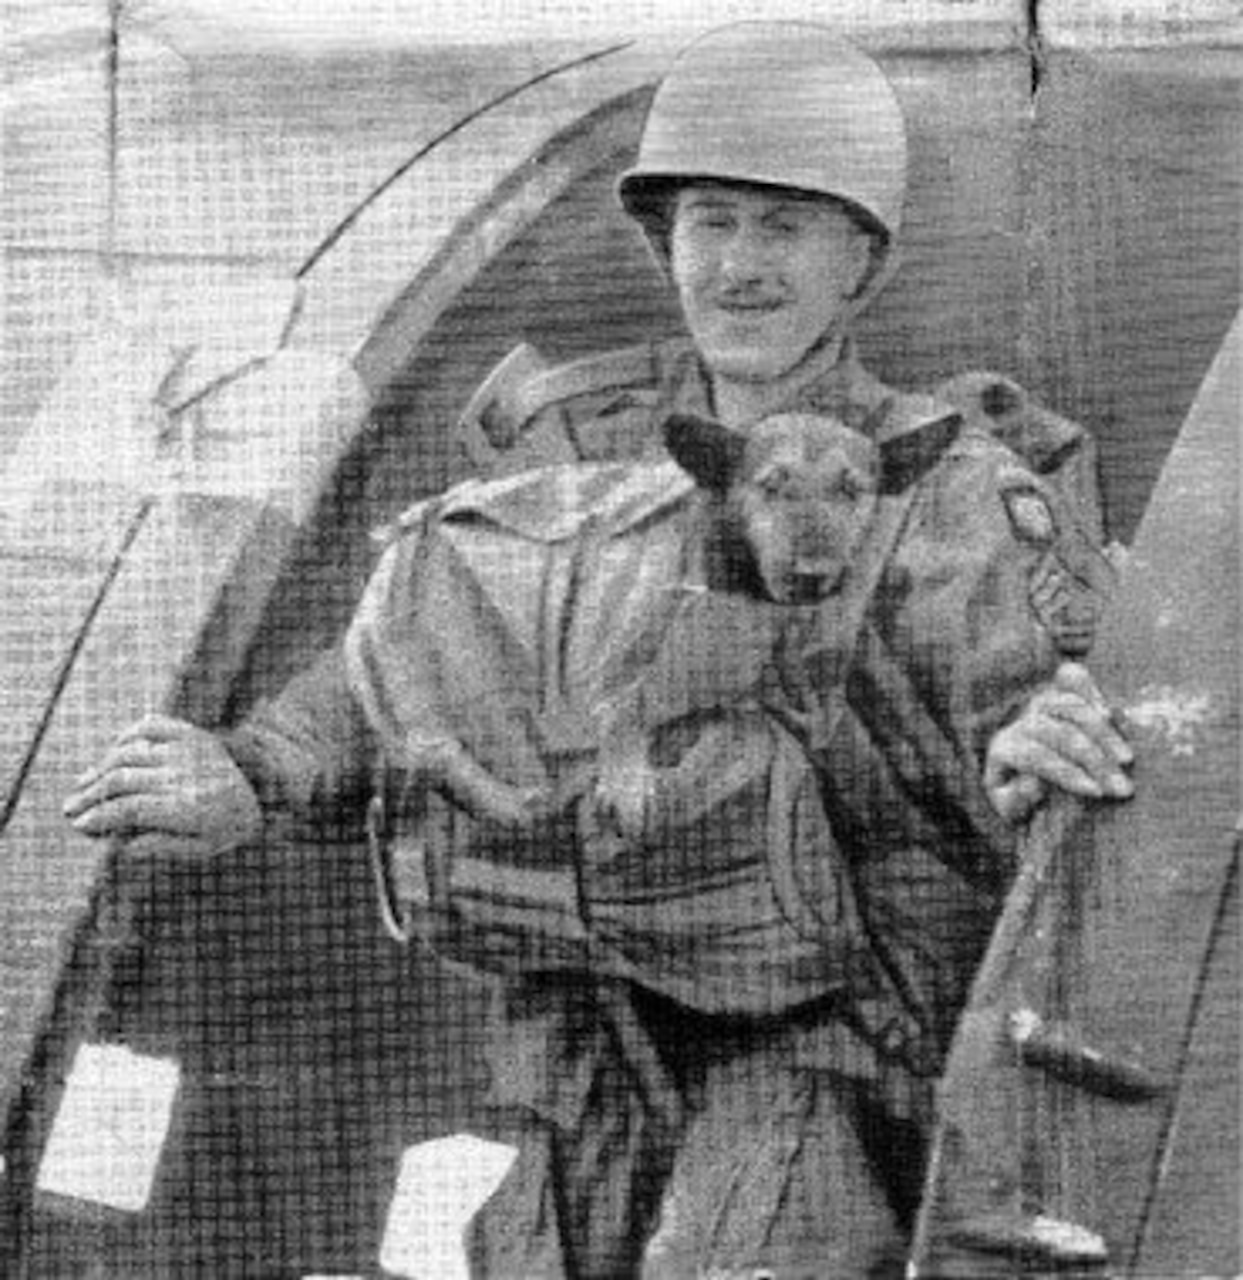 A World War II paratrooper wearing a combat helmet and parachute gear has an 8-month-old puppy strapped to his chest. Both stand at the open door of an airplane.